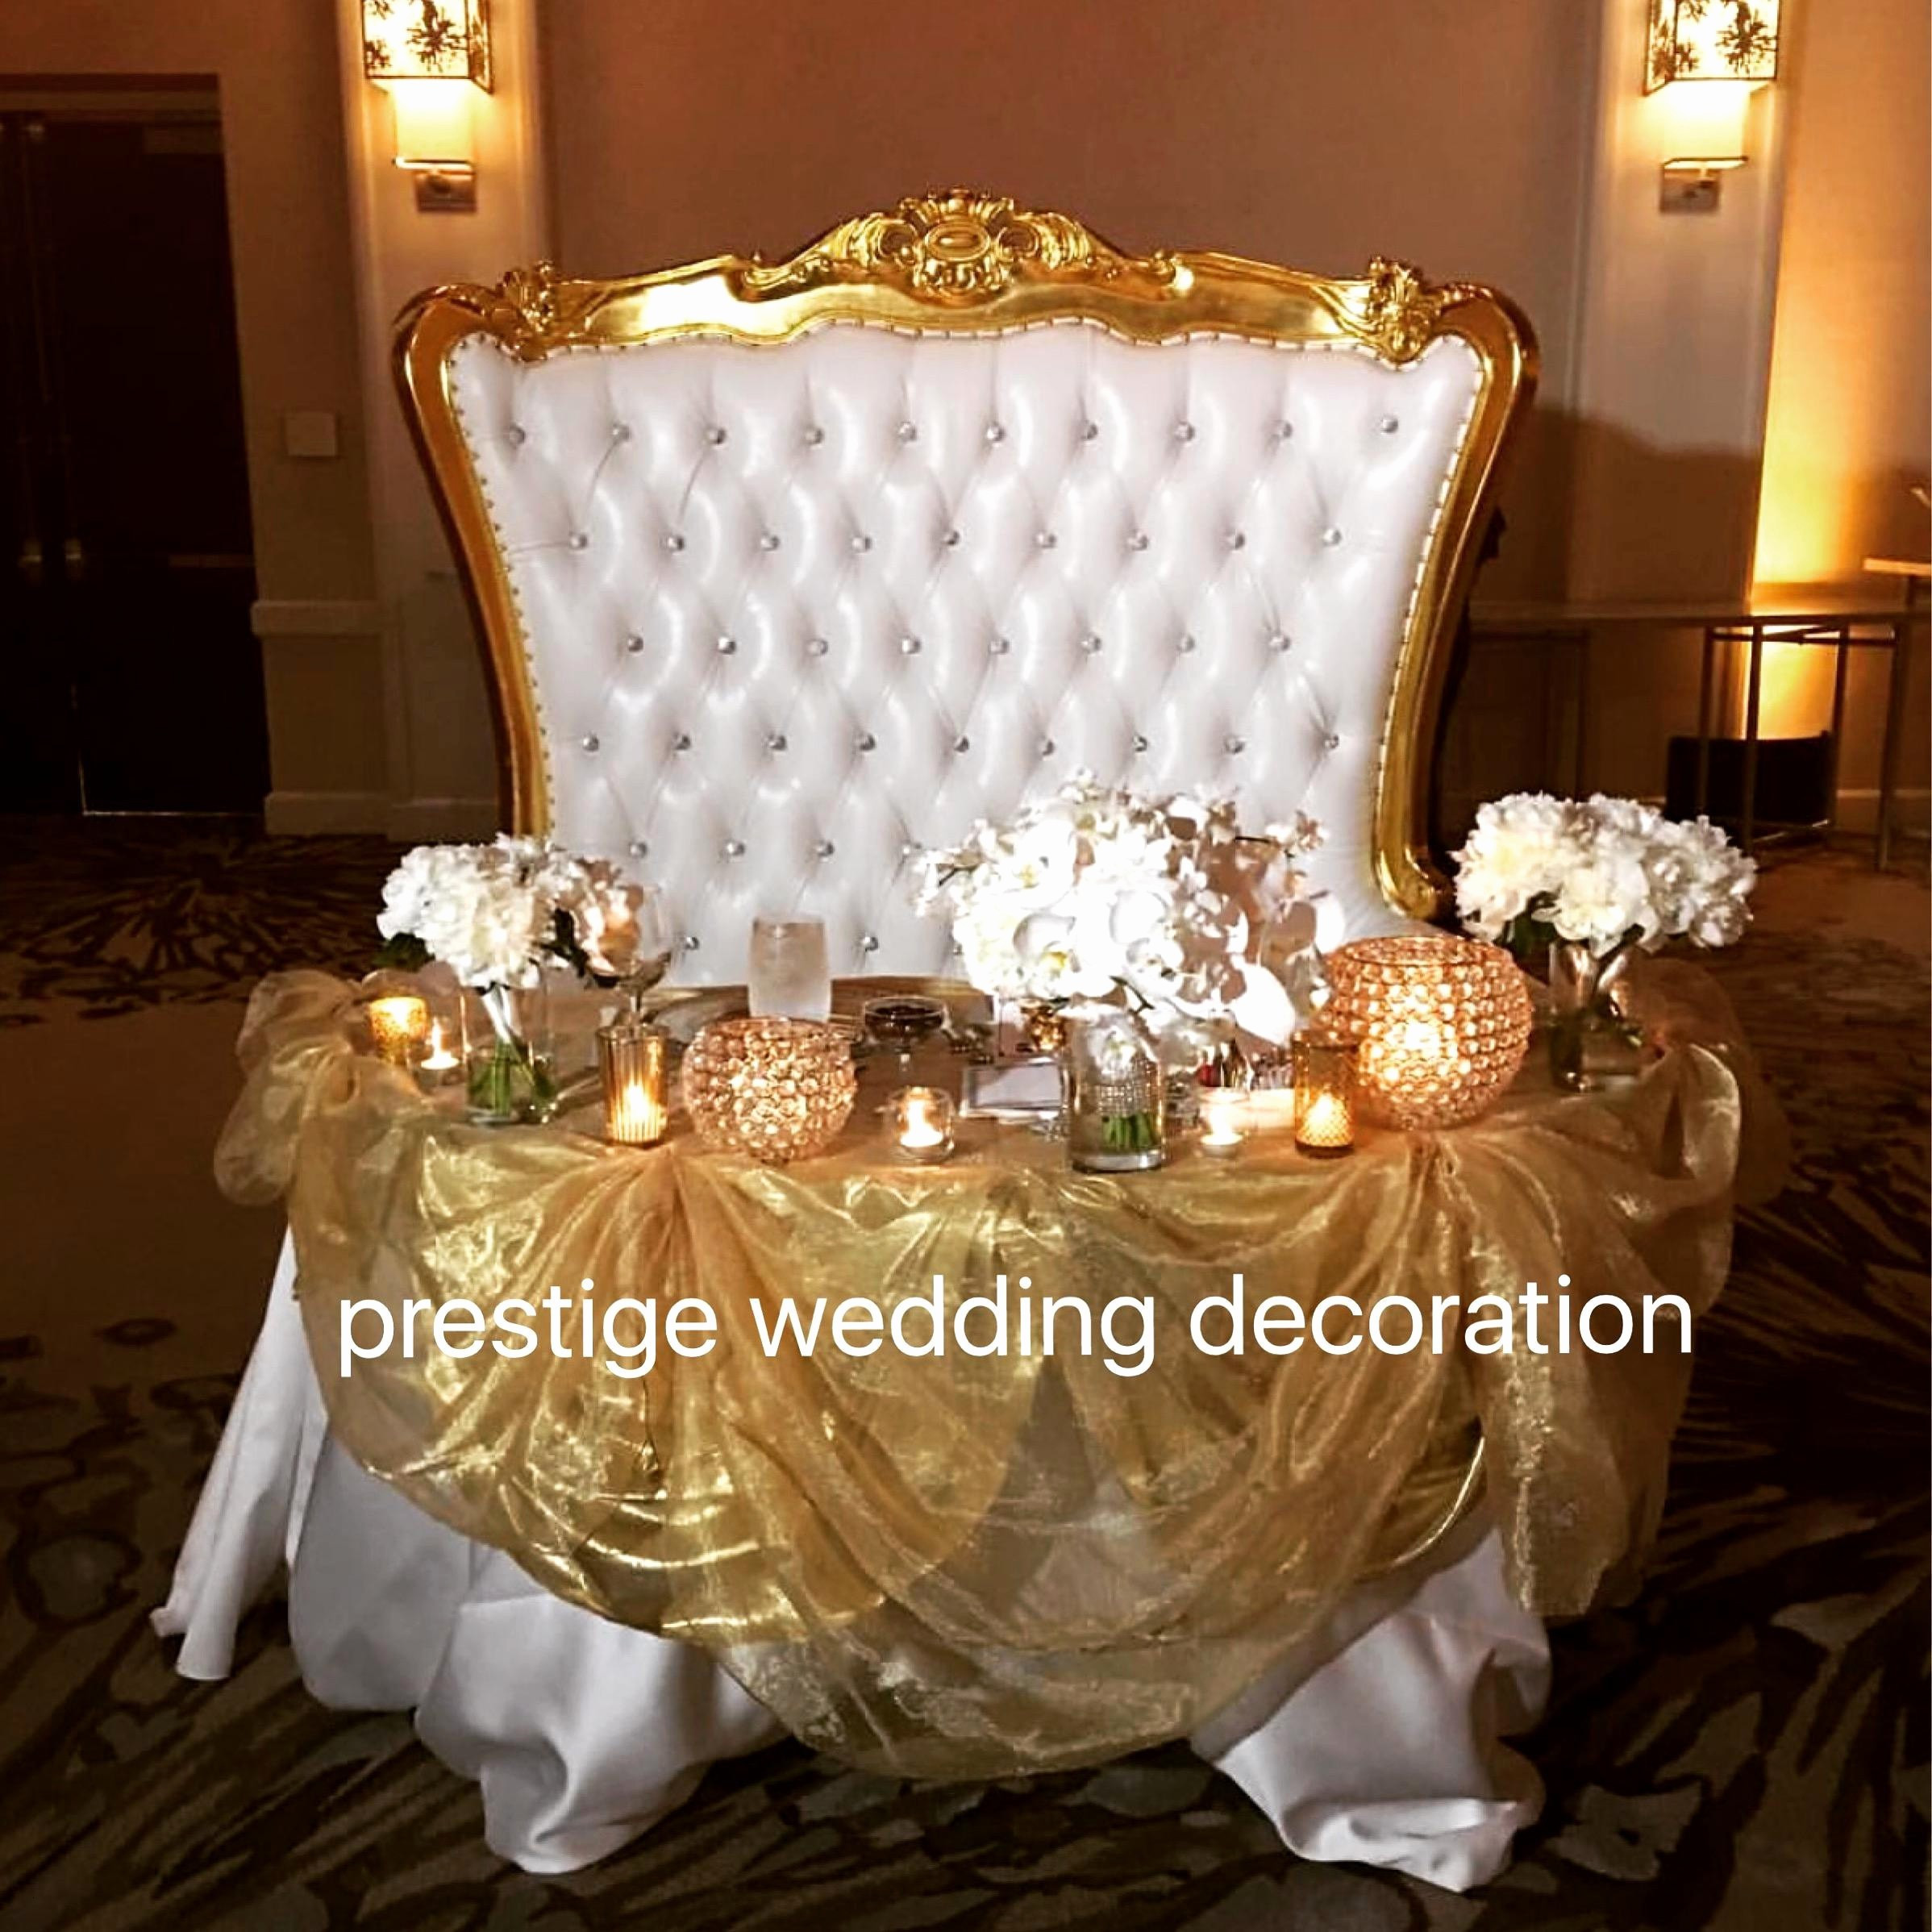 decorative vases in living room of decoration for wedding table fresh mirrored square vase 3h vases throughout decoration for wedding table elegant lovely wedding room decorations thecrosskeyspangbourne of decoration for wedding table decoration